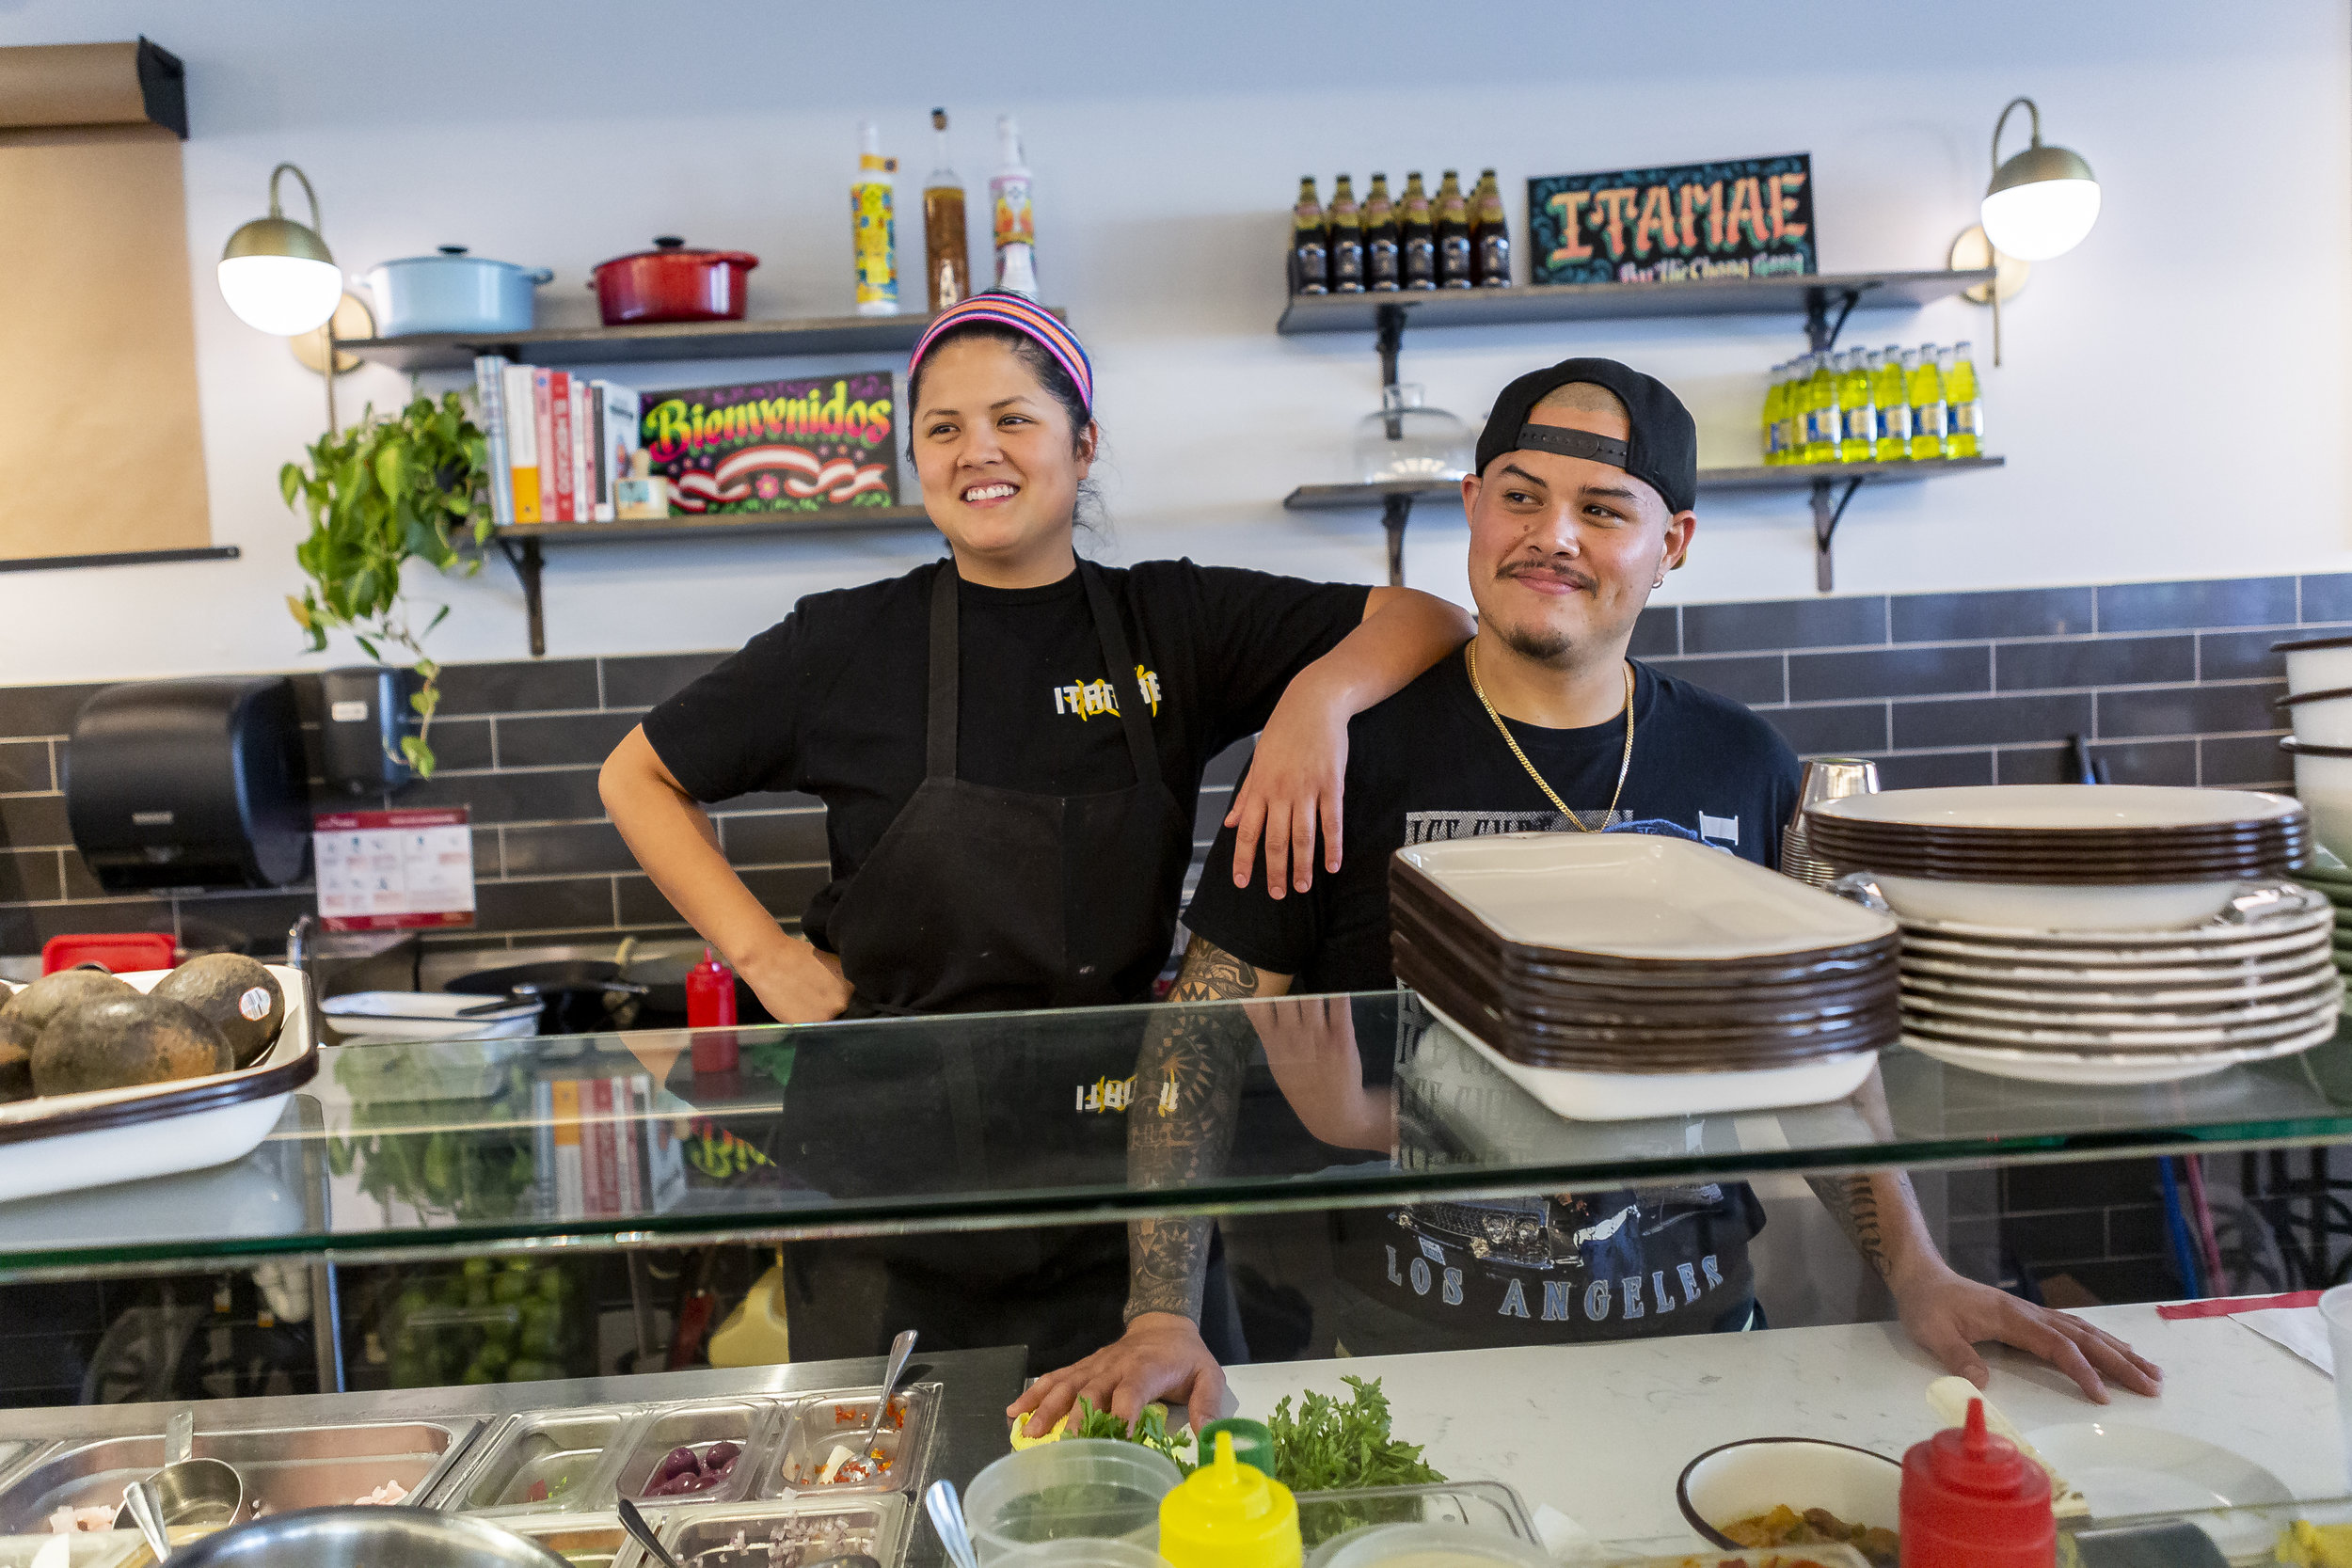 Nando Chang, 30, and his sister Val Chang, 27, work from their pop up Peruvian sushi shop inside the Design District in Miami on Saturday, March 16, 2019. The Changs have been nominated for a Rising Star James Beard award.